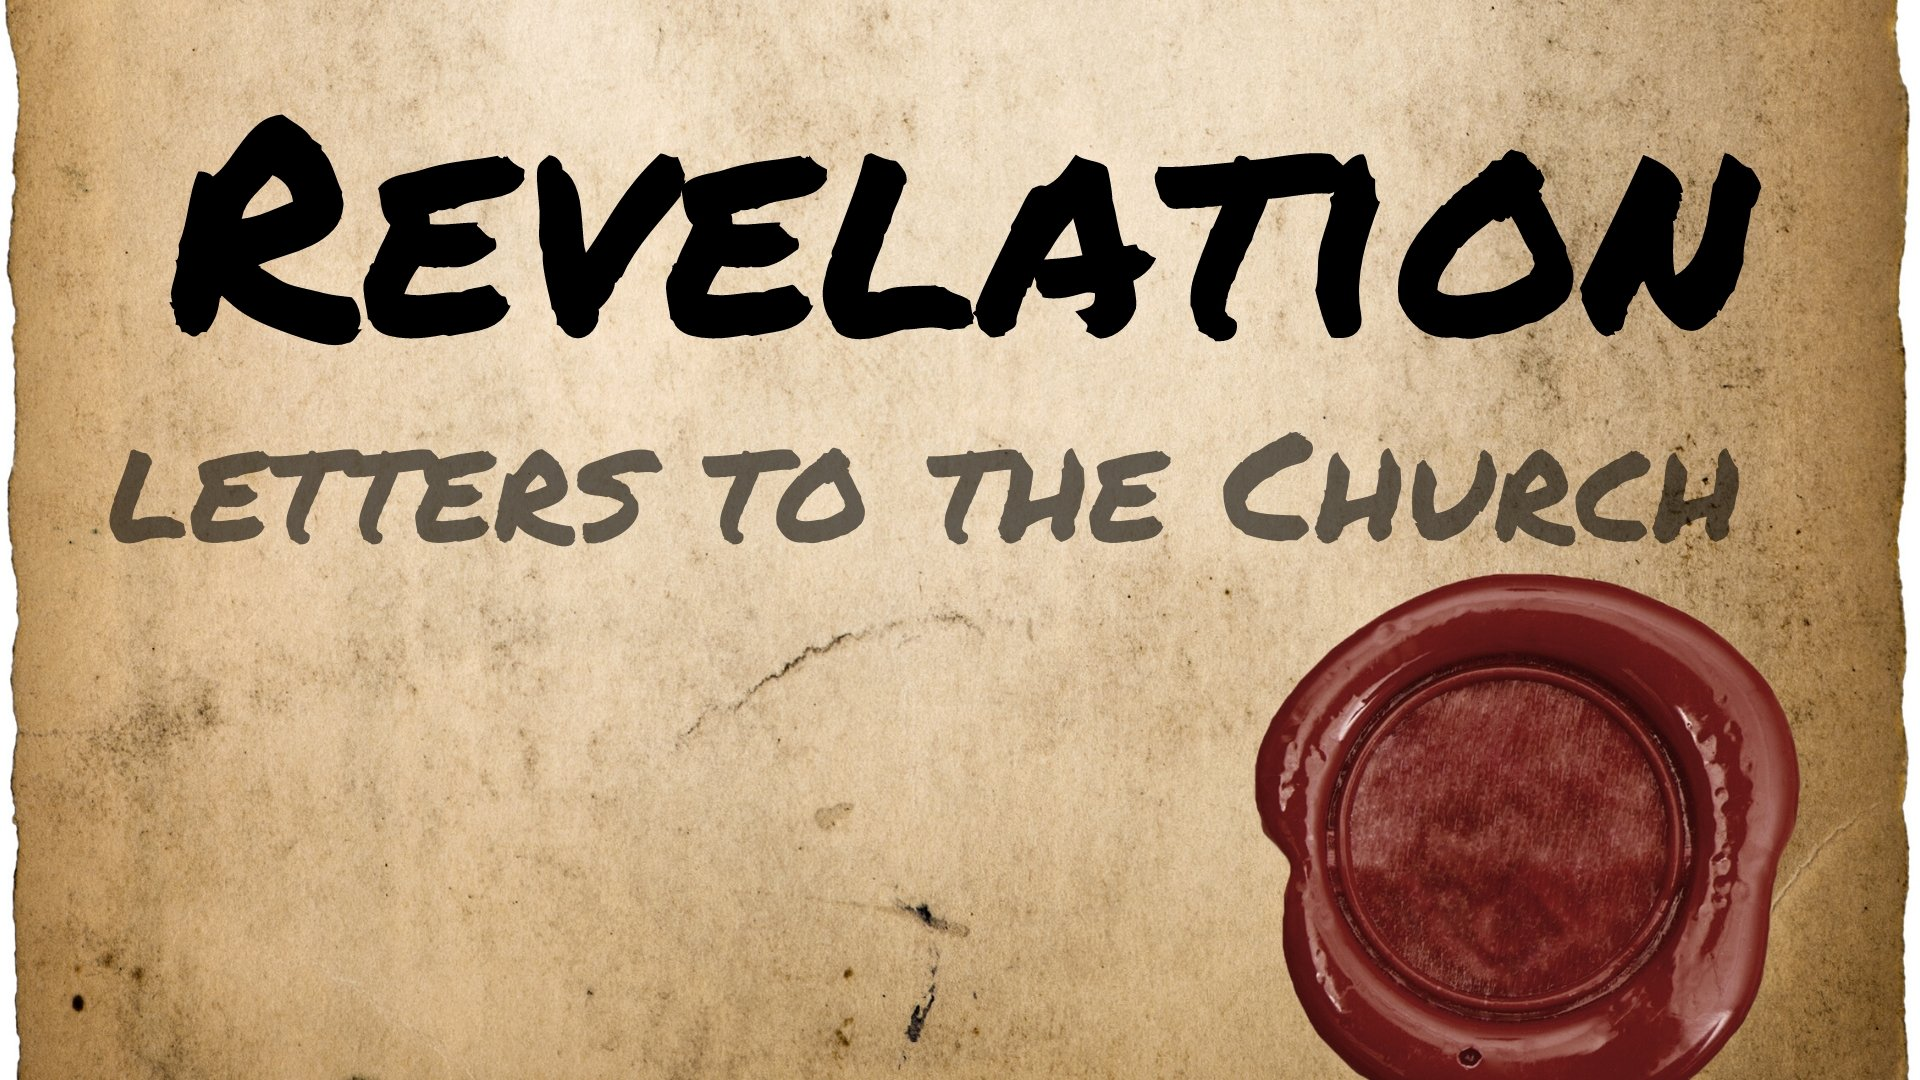 Revelation Letters to the Church